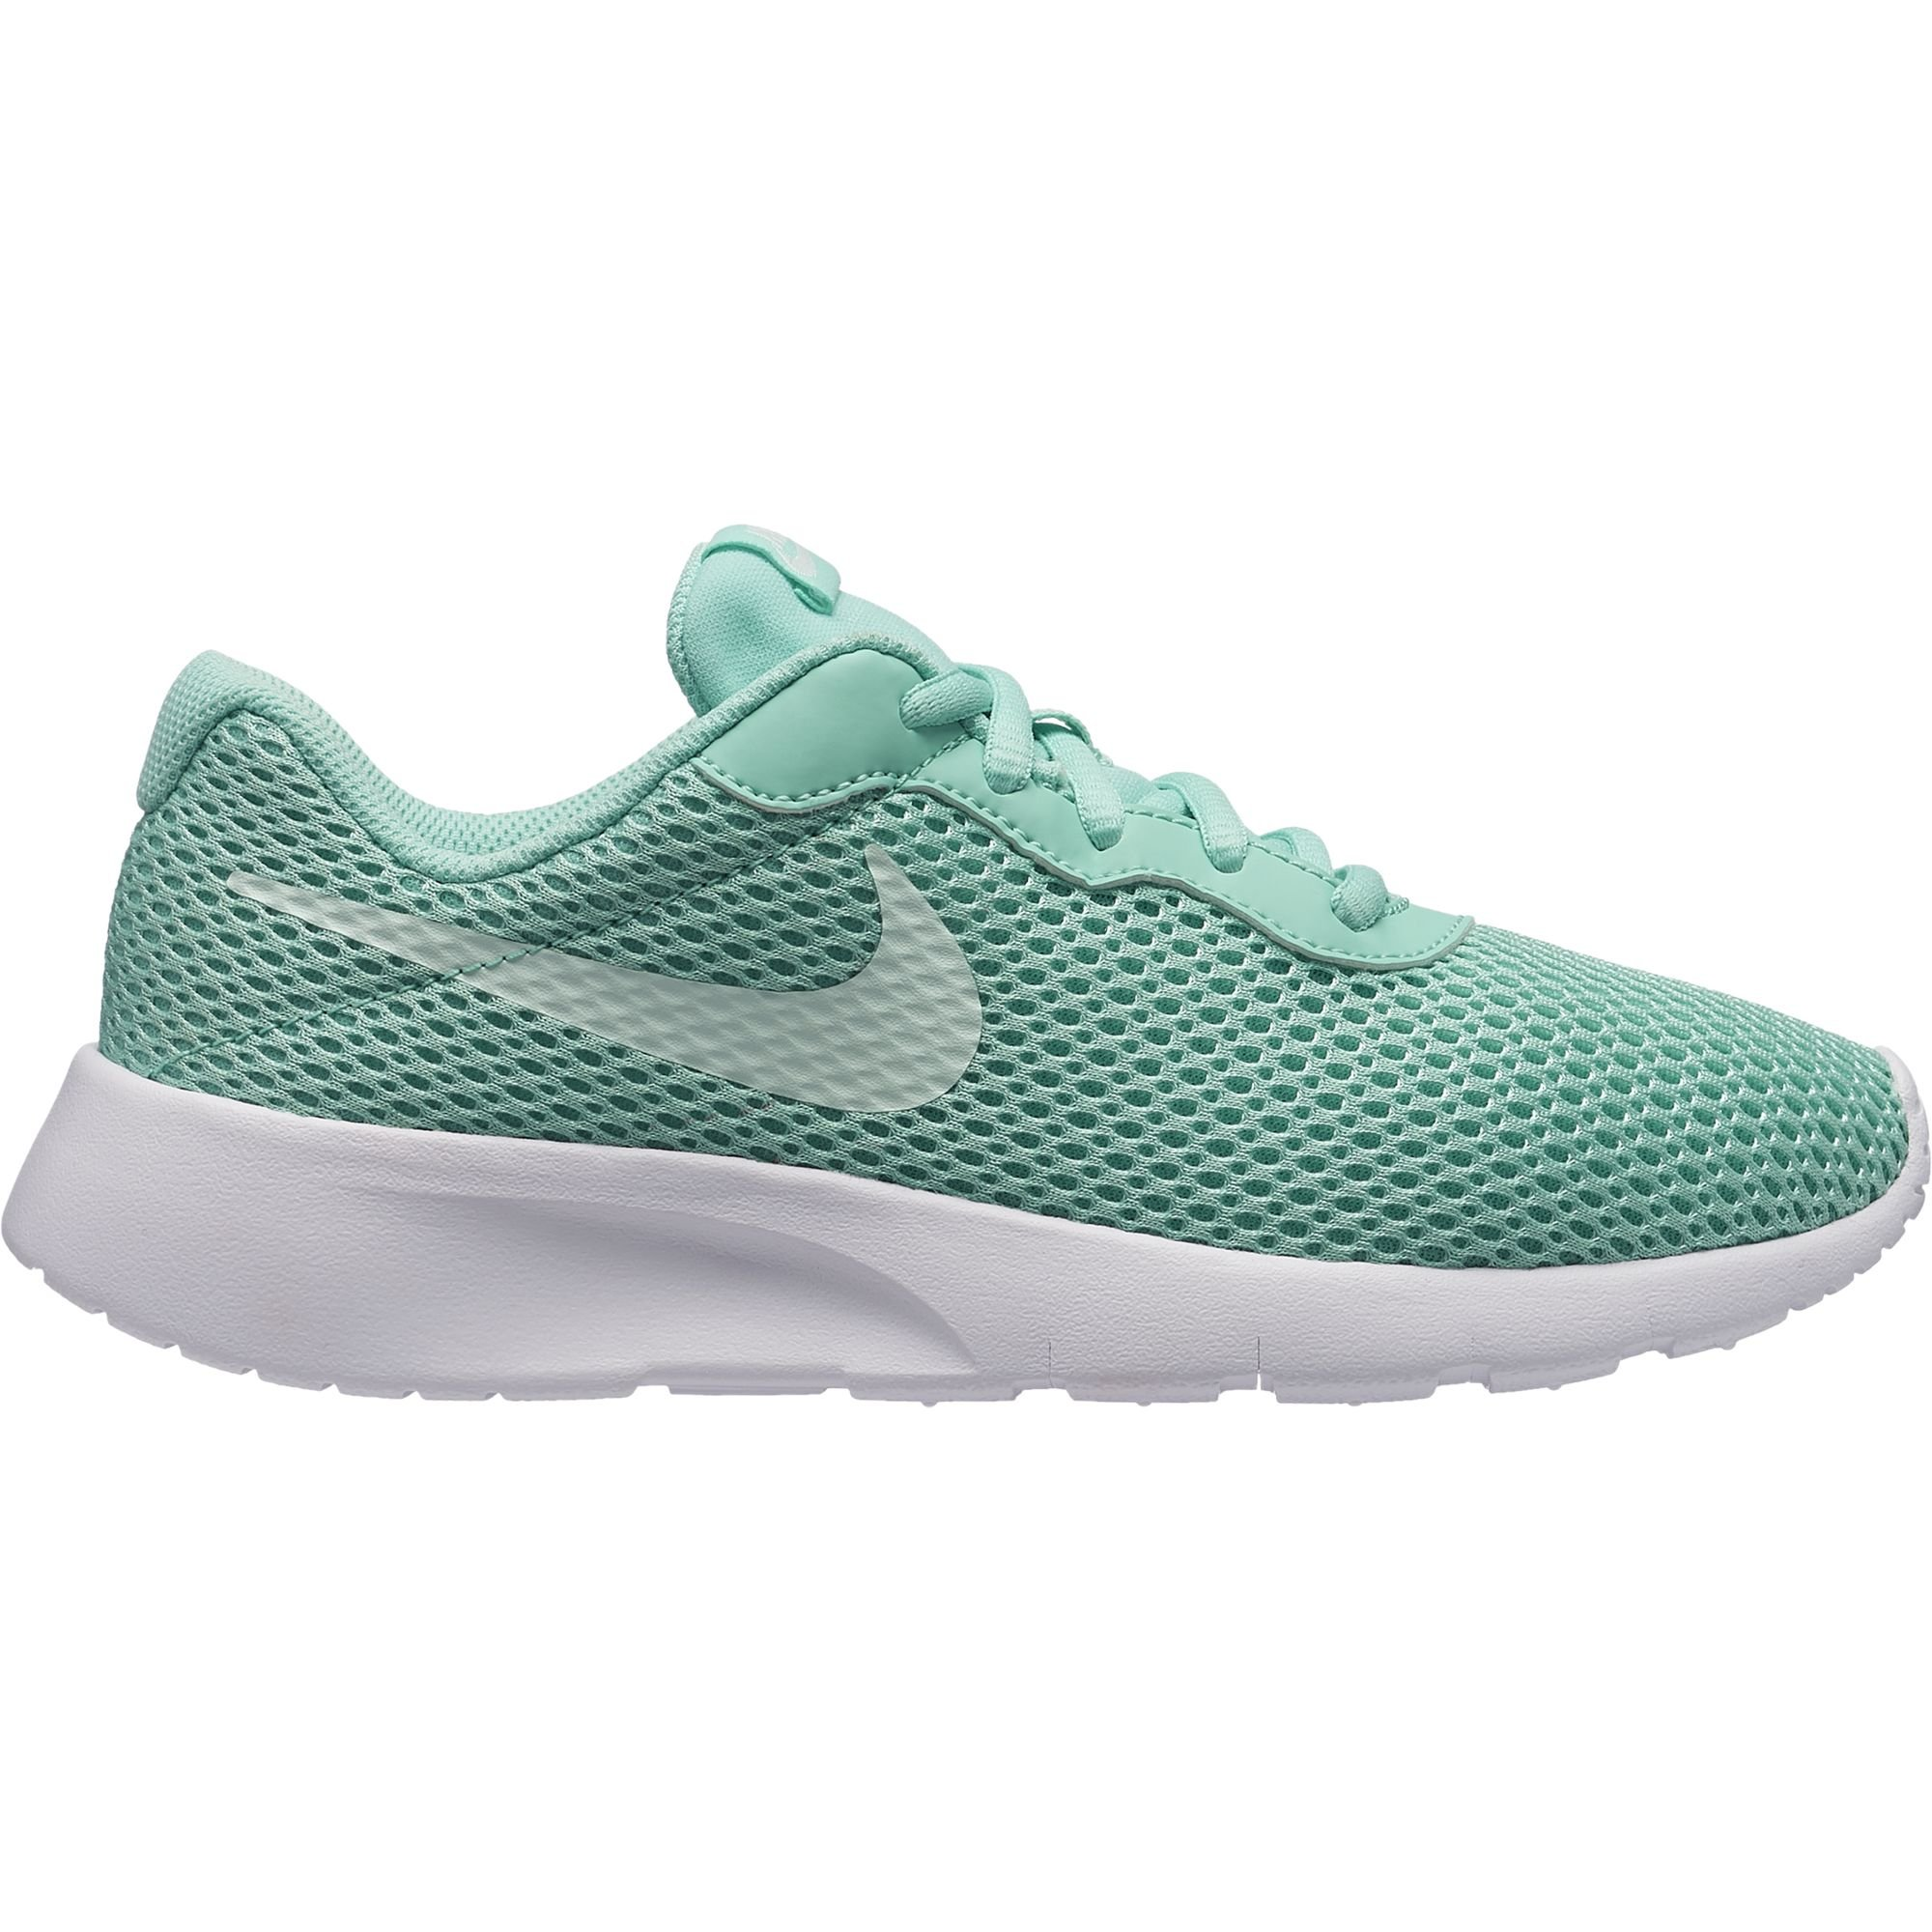 Nike Girl's Tanjun Shoe Emerald Rise/Igloo/White Size 4 M US